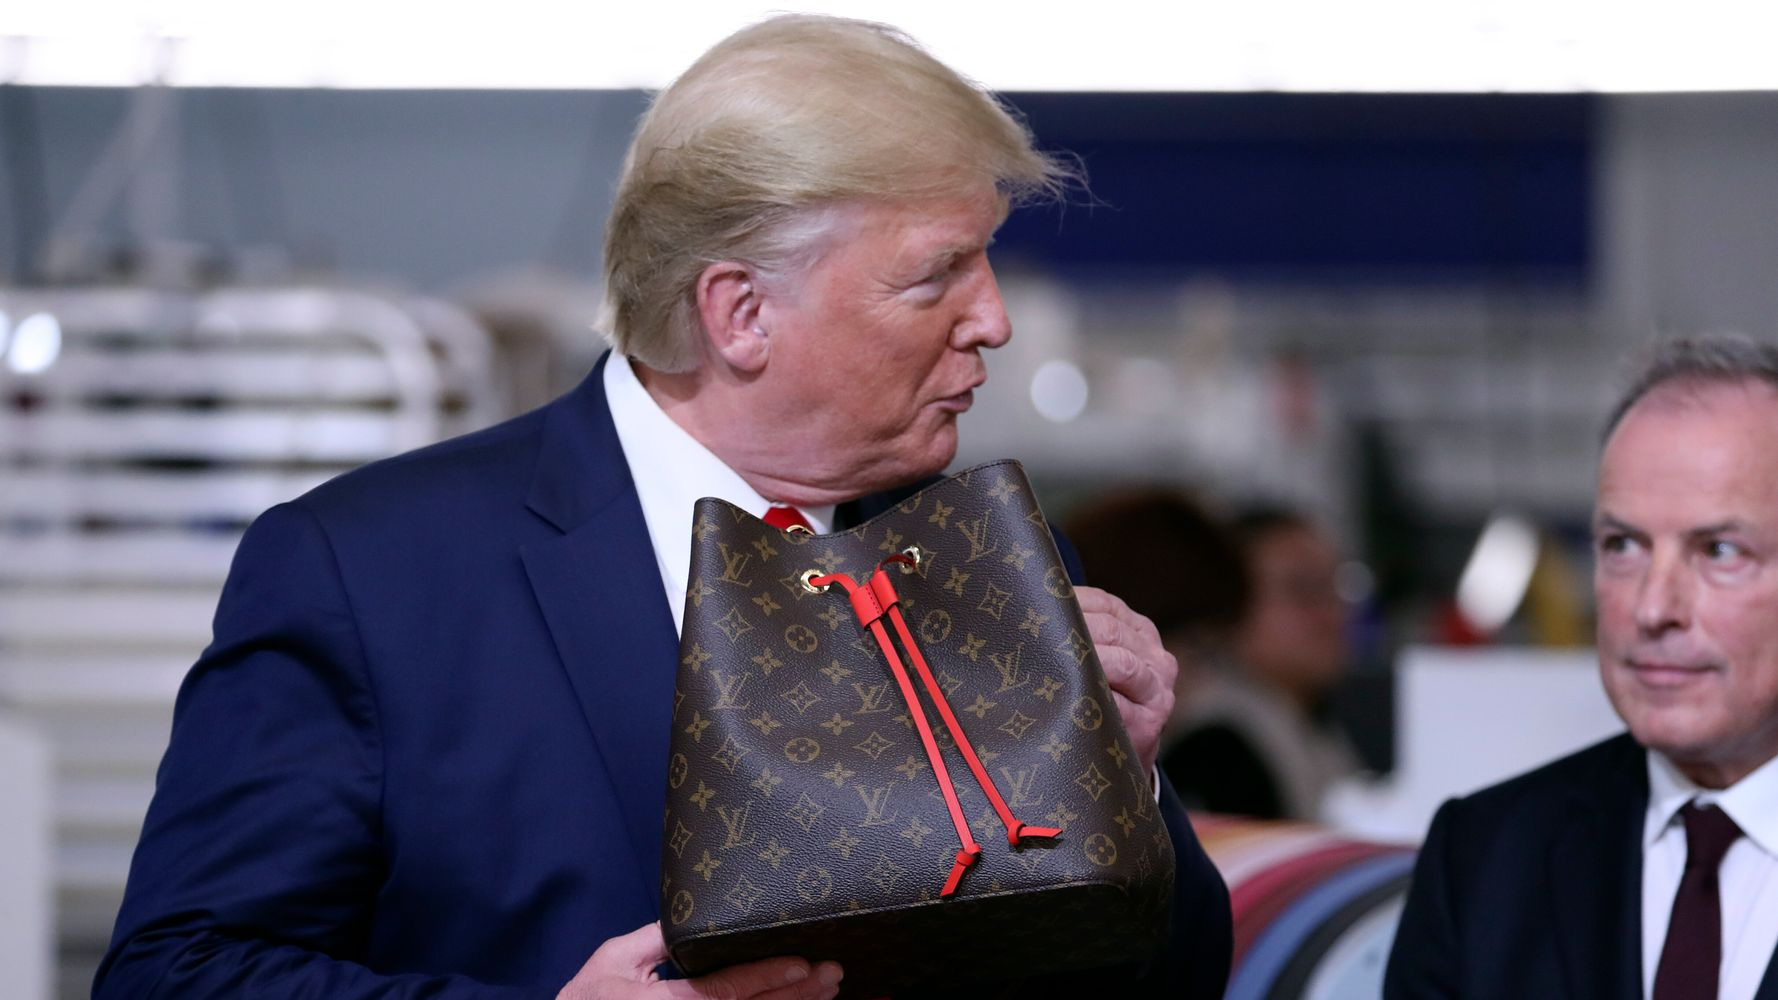 Louis Vuitton Director Slams Trump As 'Joke' After Visit To Brand's Texas Workshop